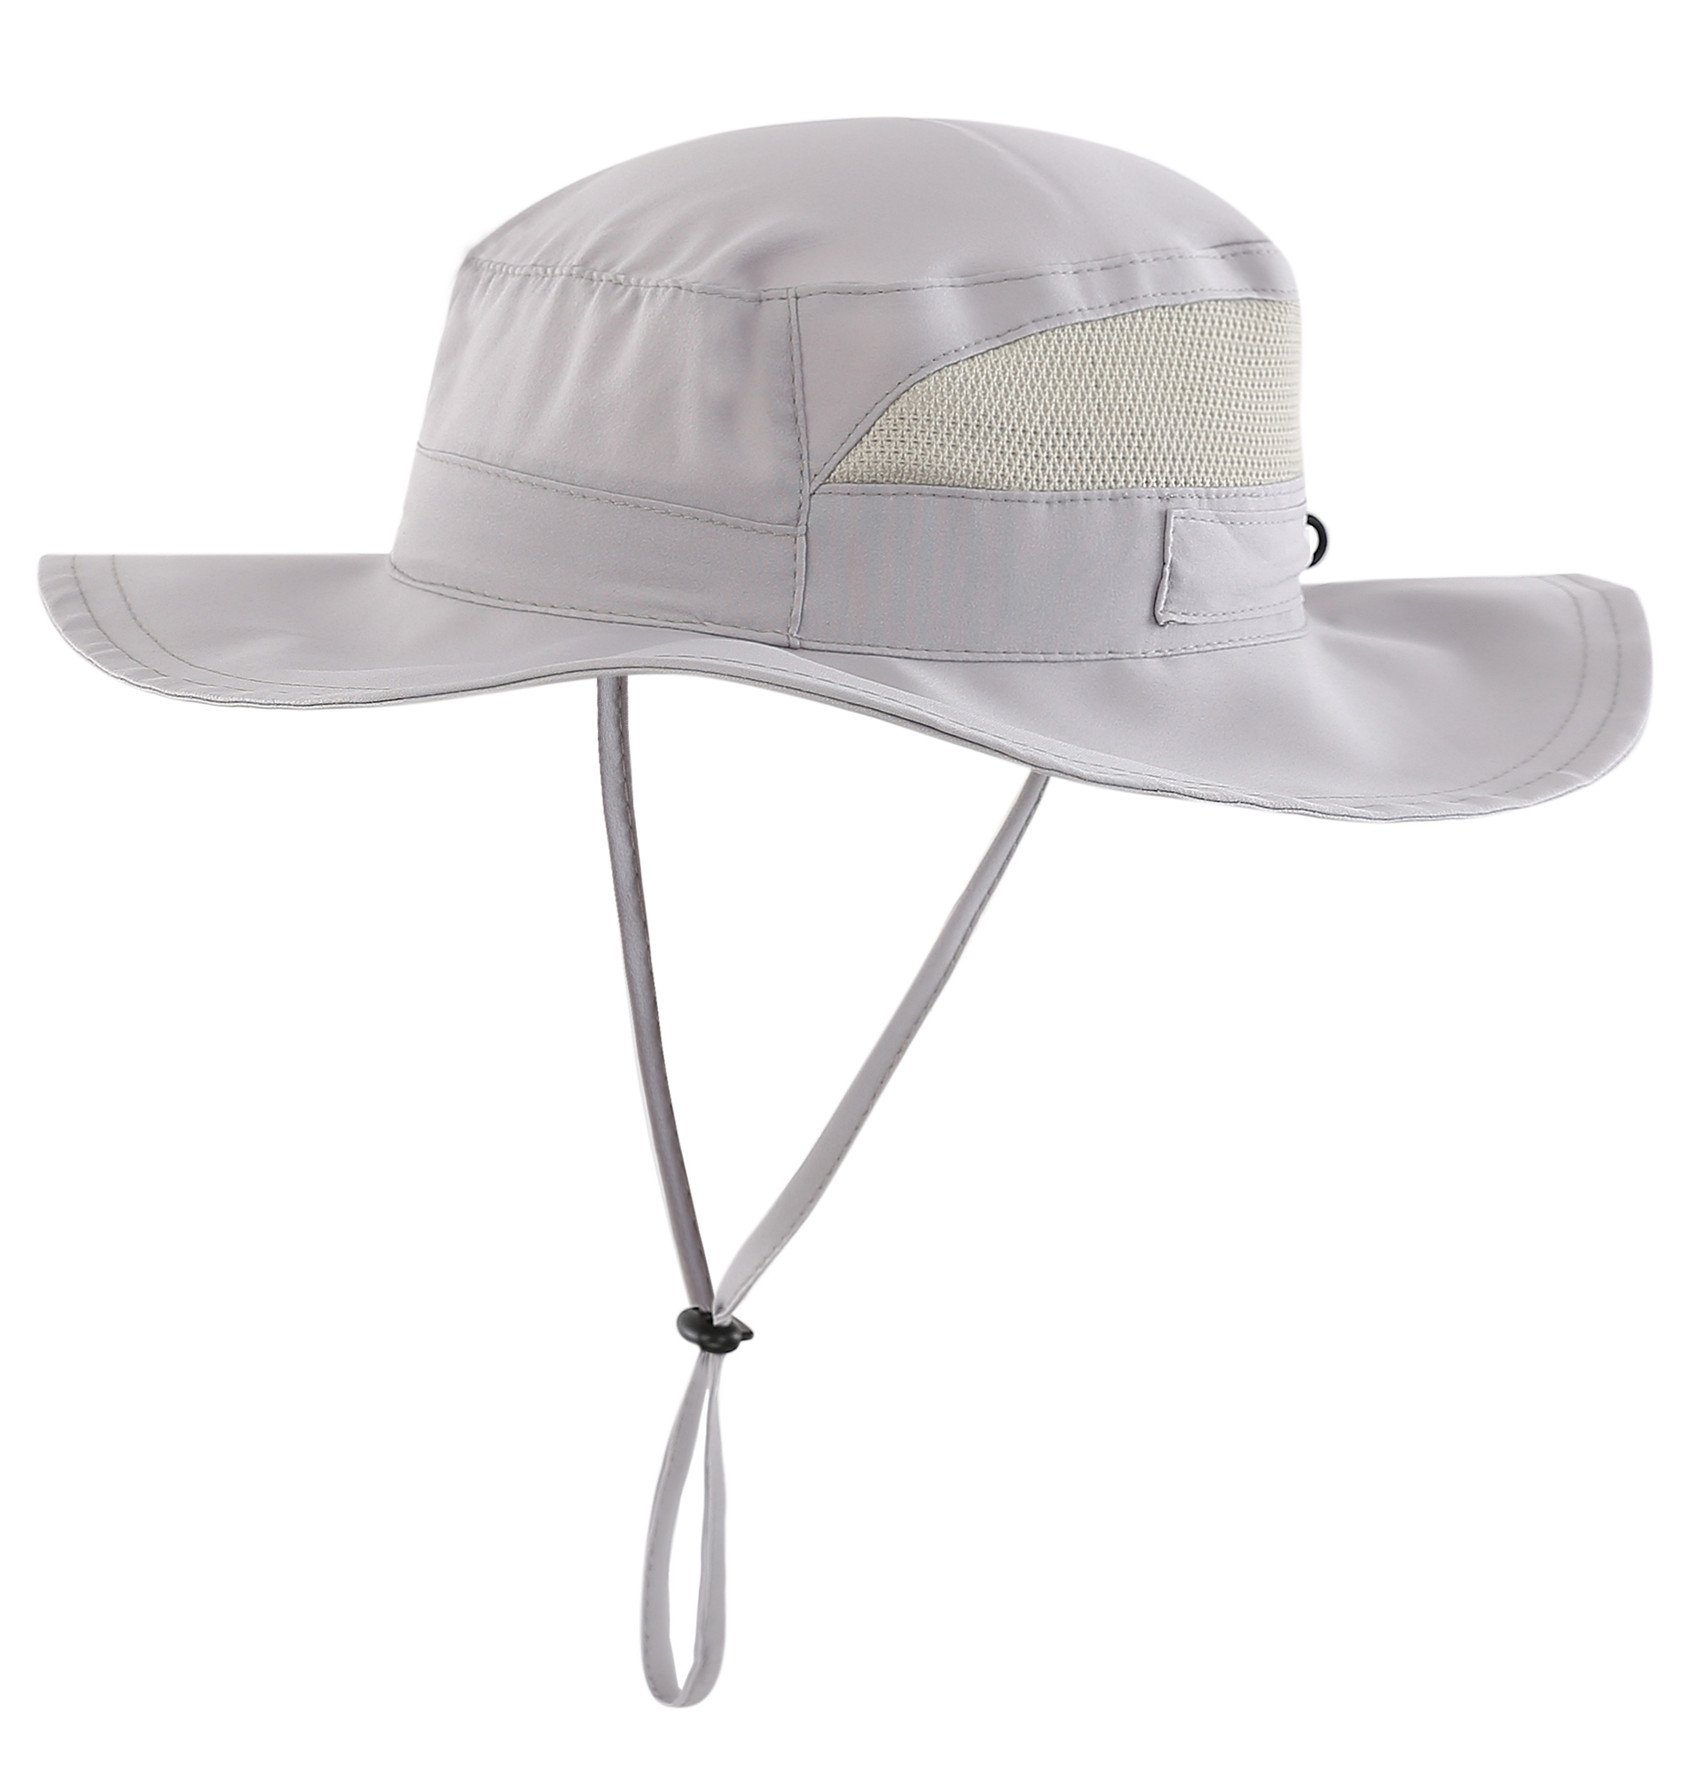 Connectyle Toddler Kids UPF 50+ Mesh Safari Sun Hat UV Sun Protection Hat Summer Daily Bucket Hat Gray by Connectyle